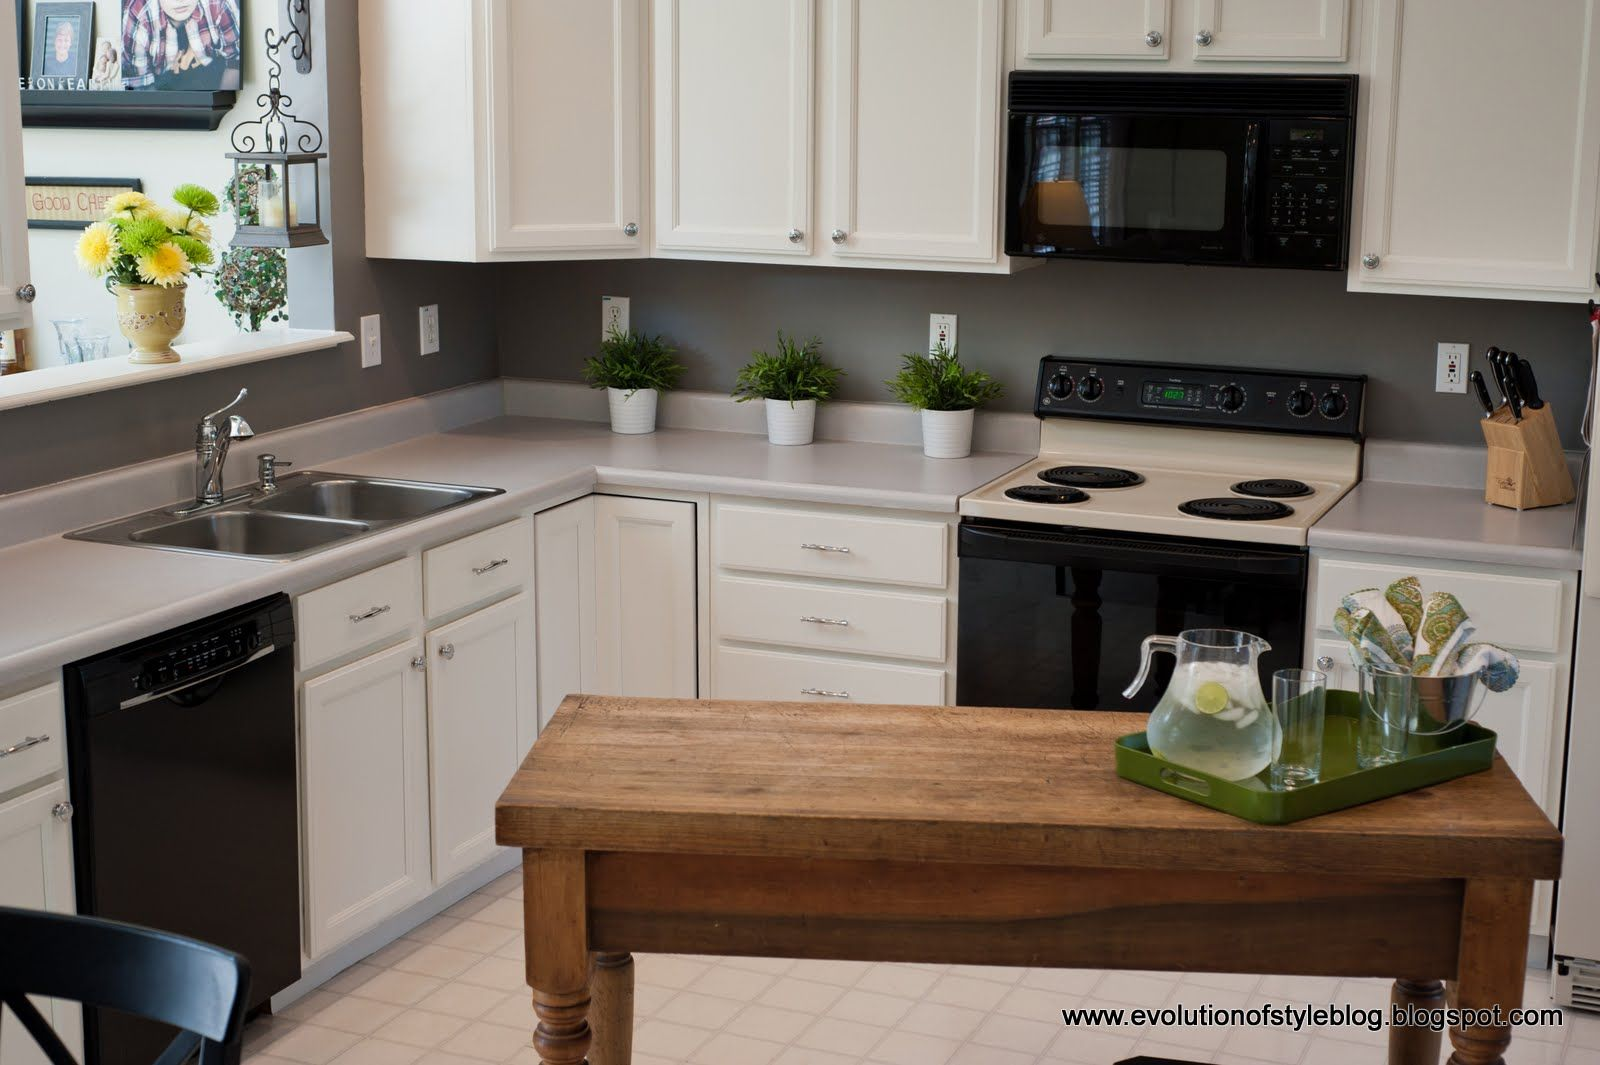 Oak Kitchen Reveal: From Builder Grade to Custom Made ...